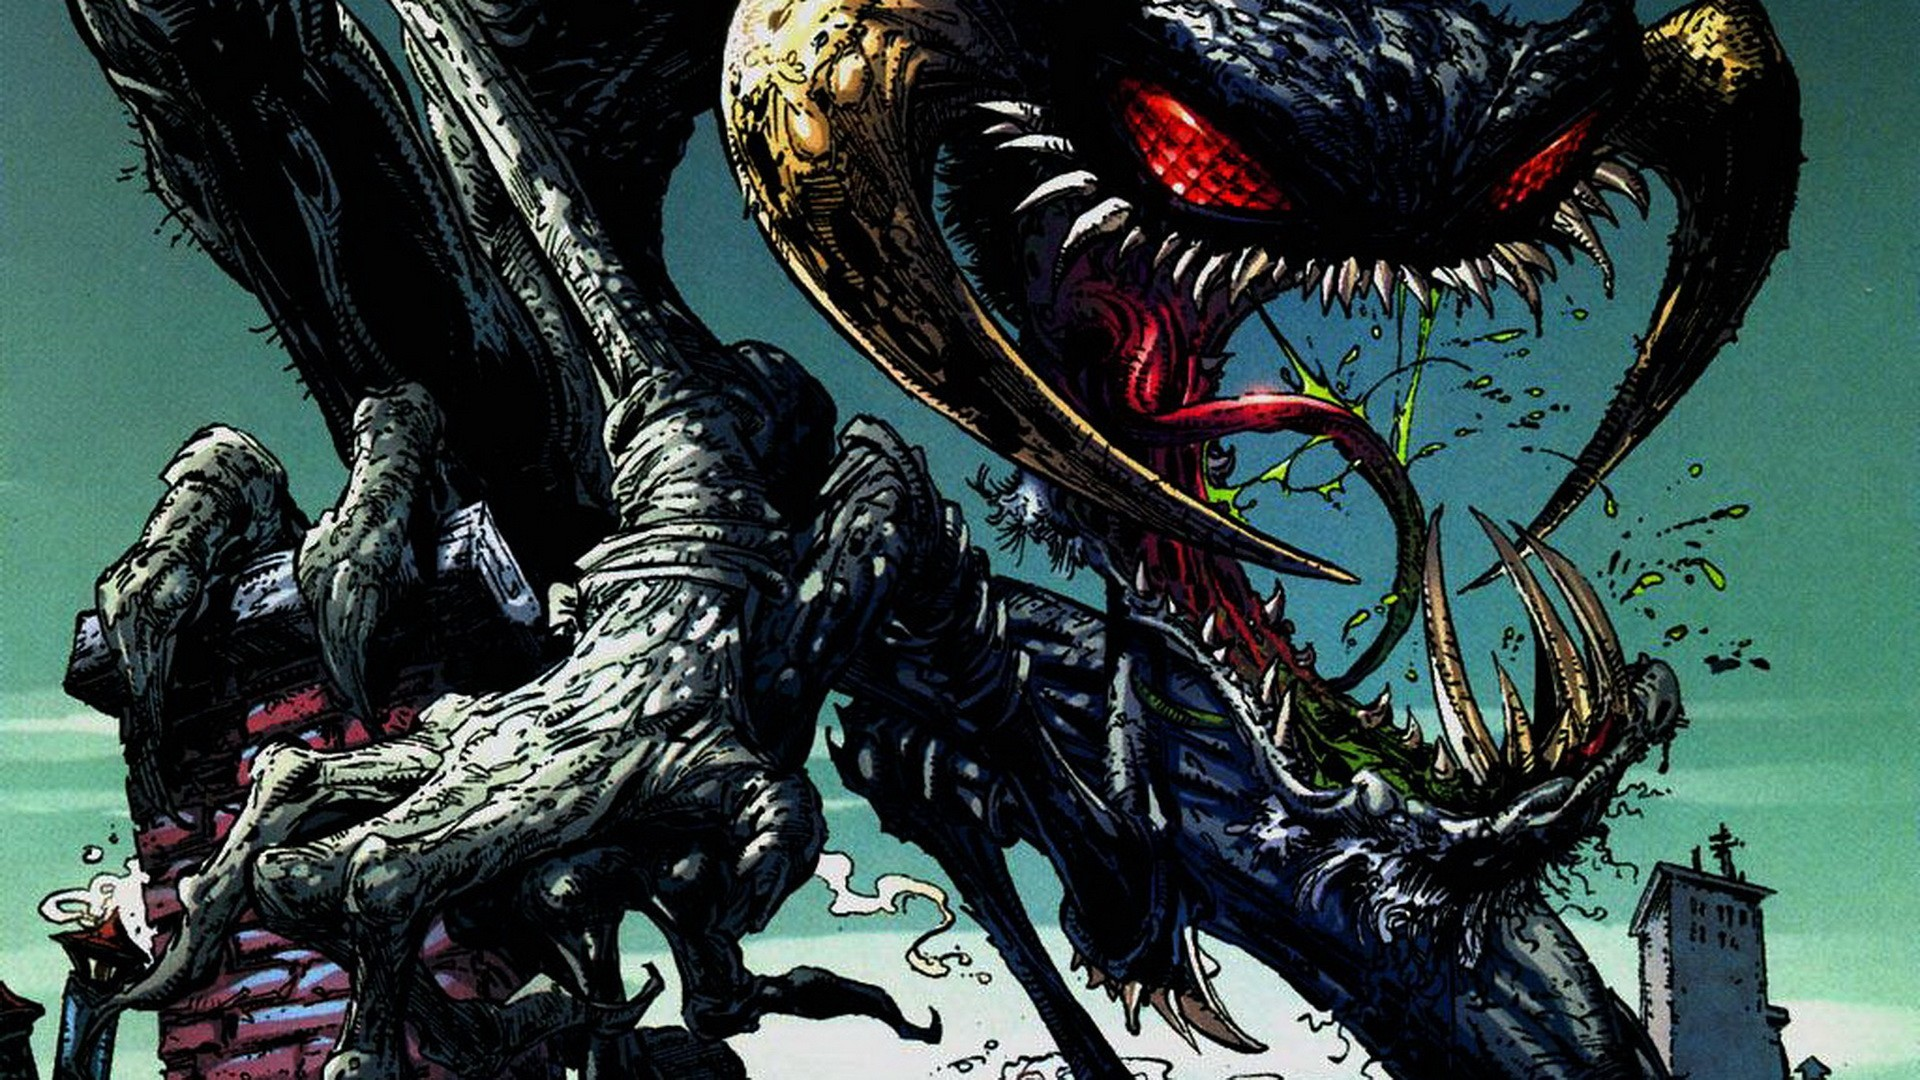 Spawn Wallpapers Wallpaper 640×480 Spawn Wallpaper (44 Wallpapers)    Adorable Wallpapers